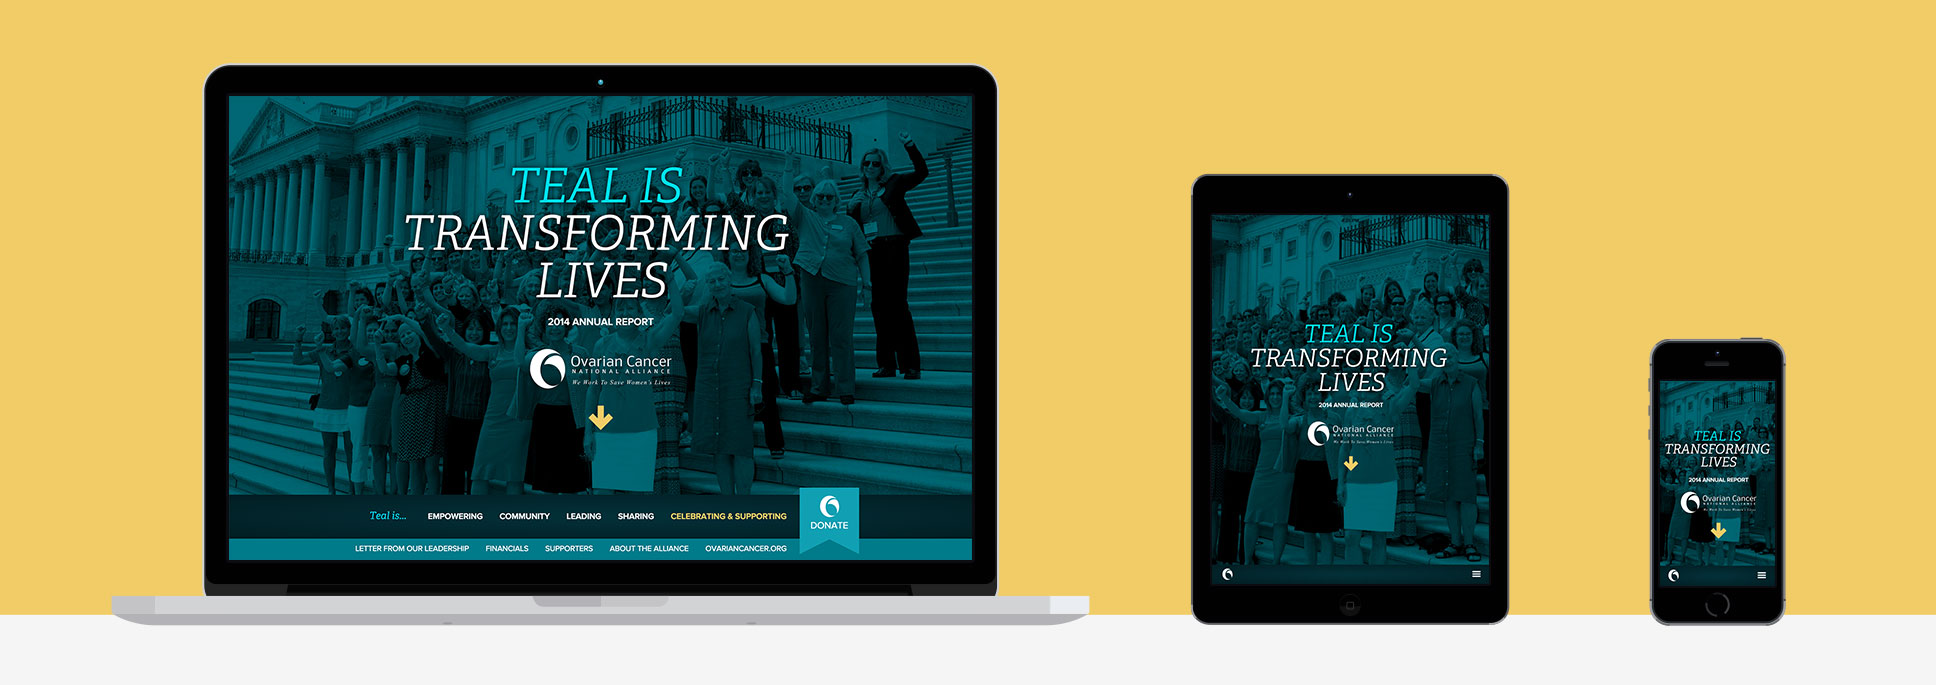 responsive design of the OCNA Annual Report on a laptop, iPad, and iPhone